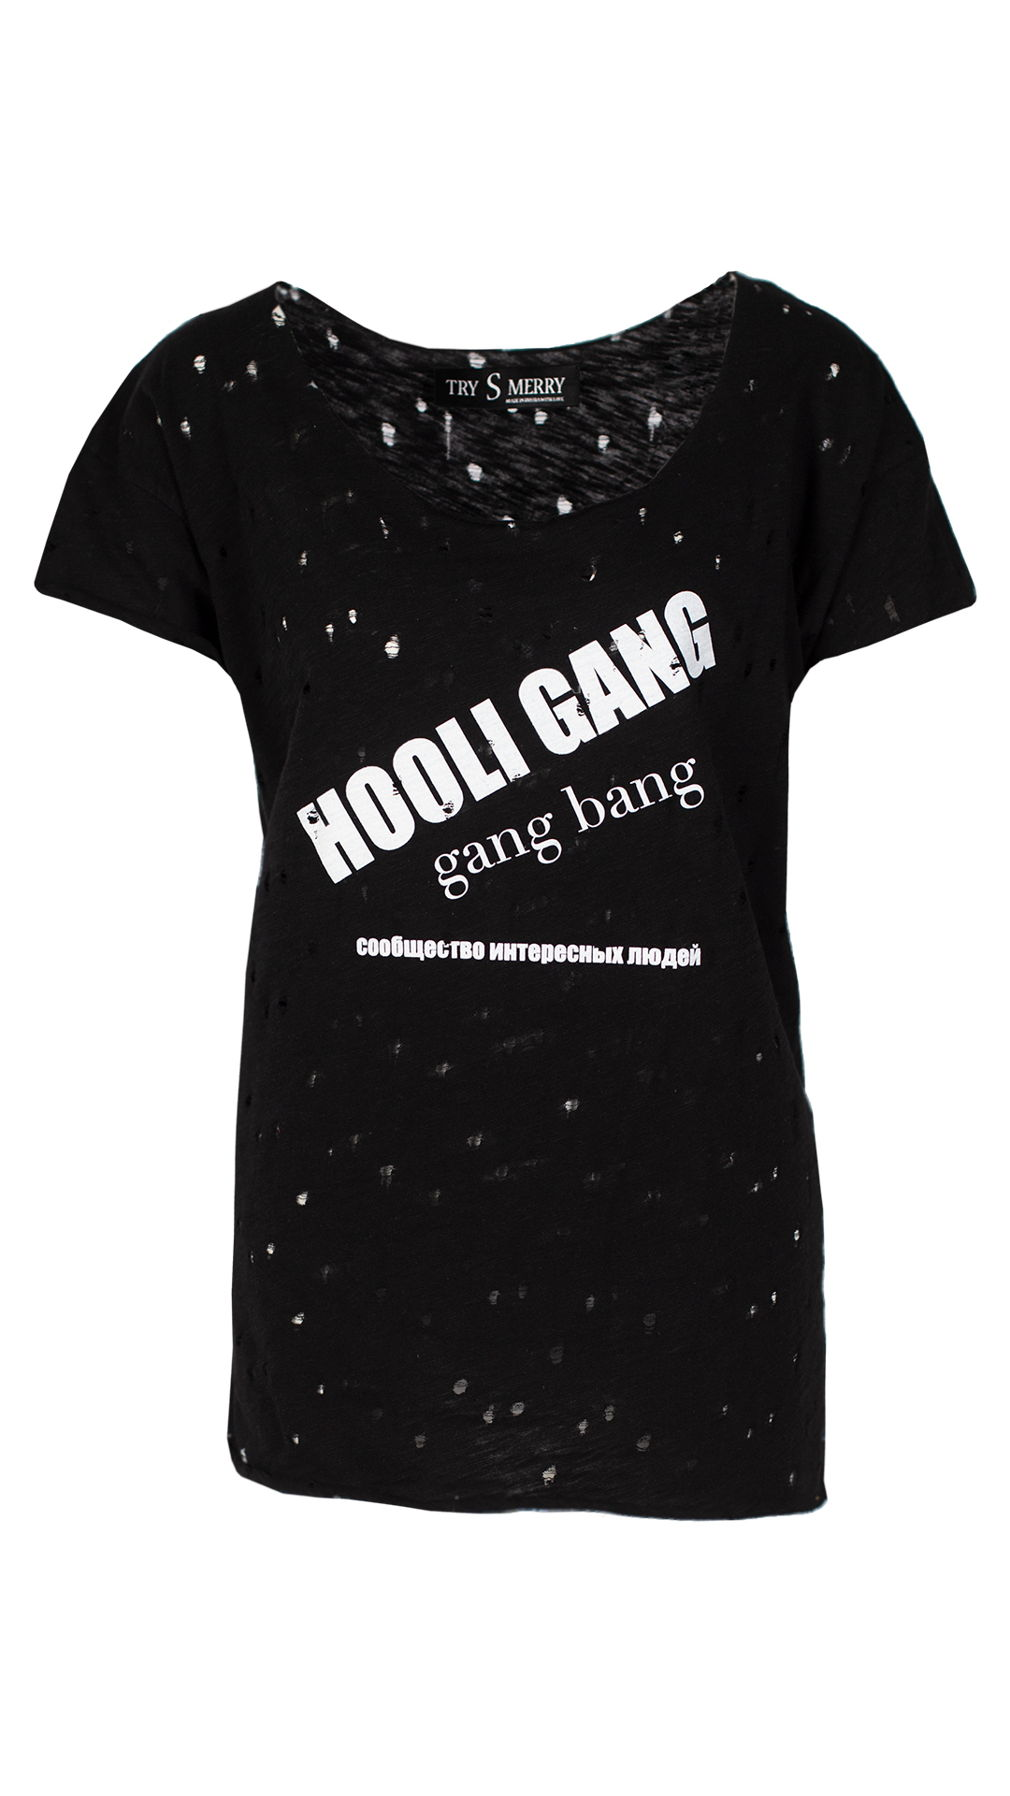 HooliGang black tshirt